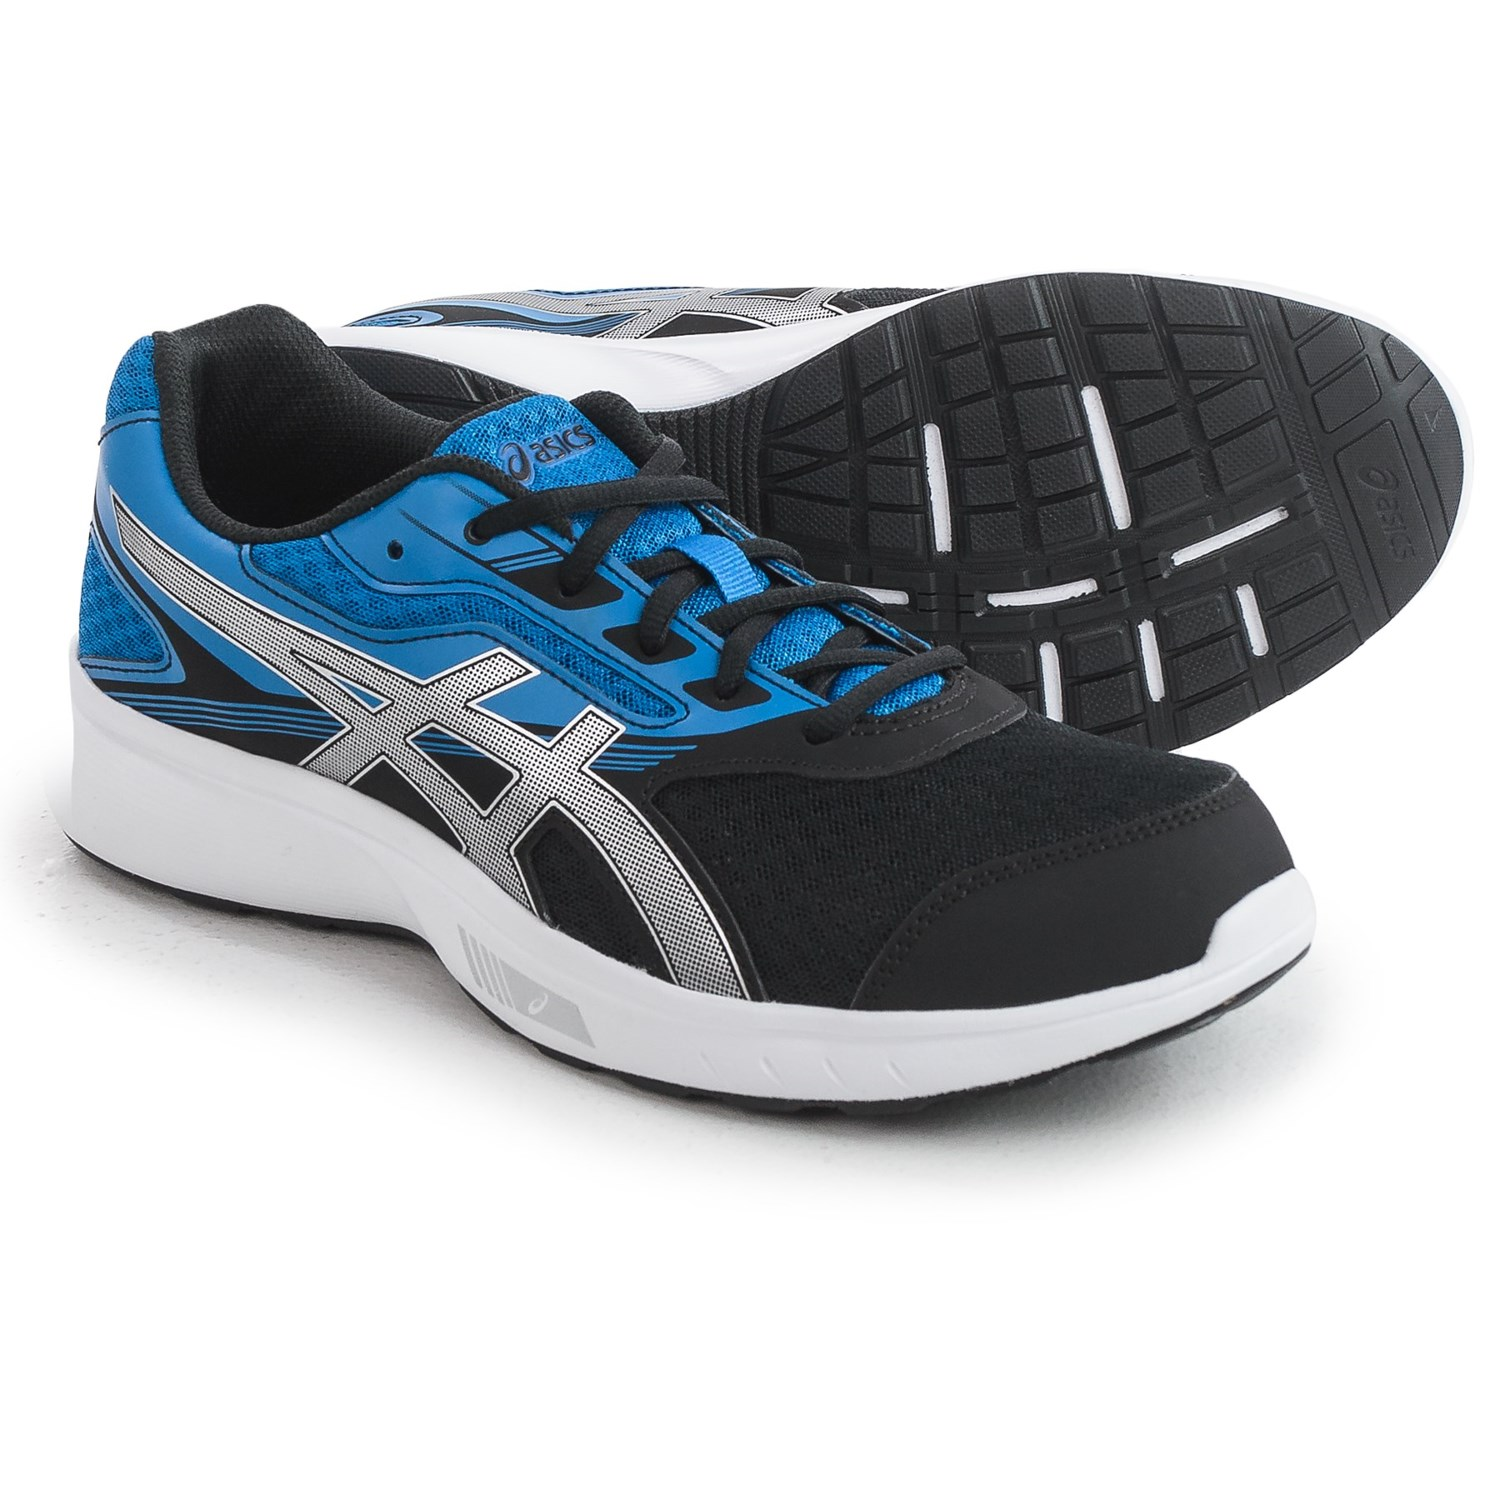 Running Buy Shoes Deals Asics Running Asics Asics Shoes Running Buy Buy Deals EHIYWD29